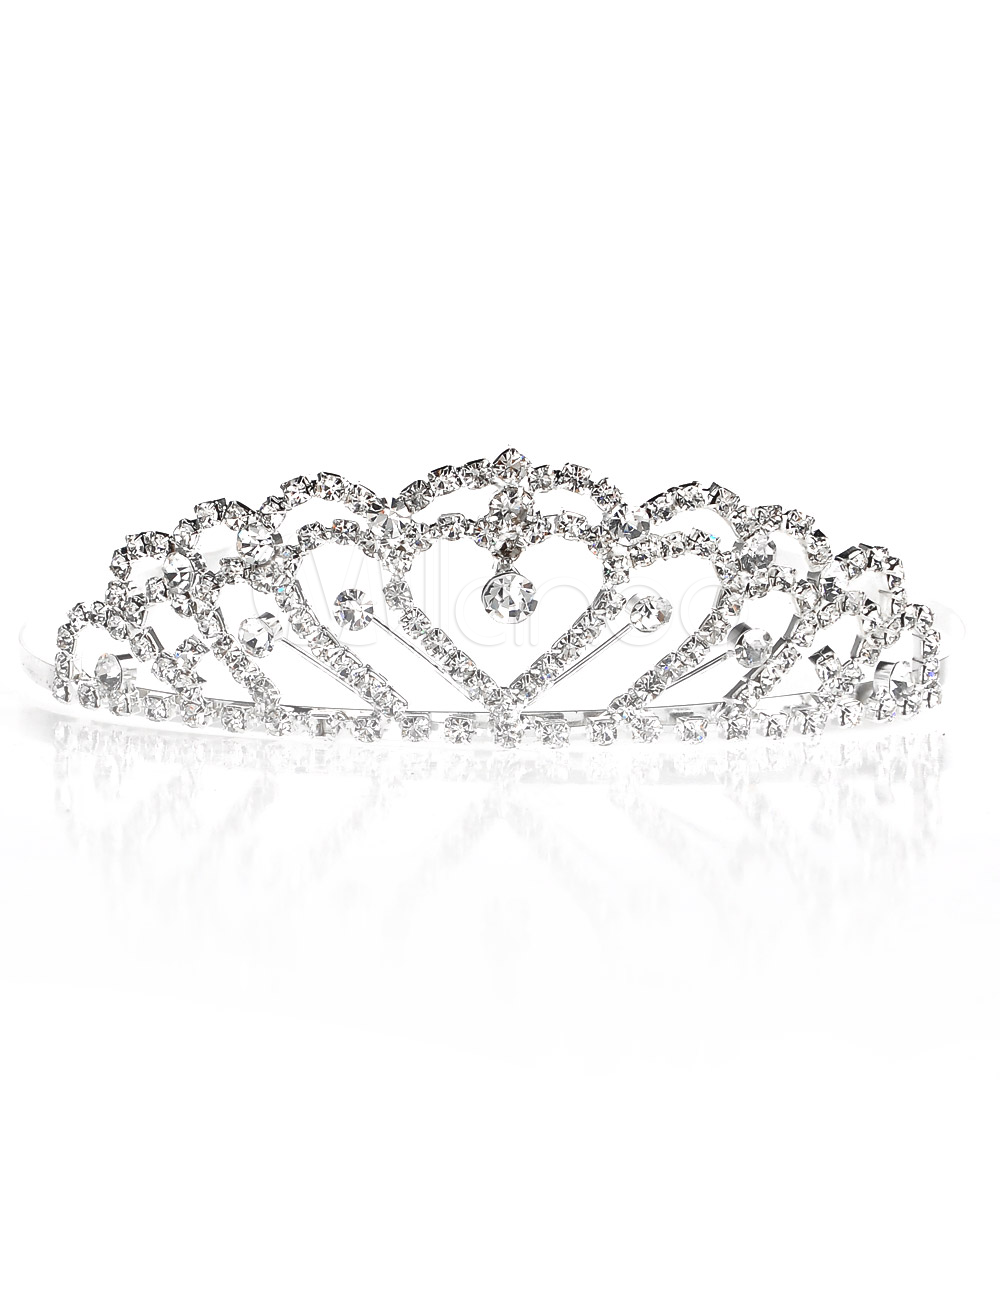 Gorgeous Silver Square Round Brilliant Rhinestone Tiara For Wedding image